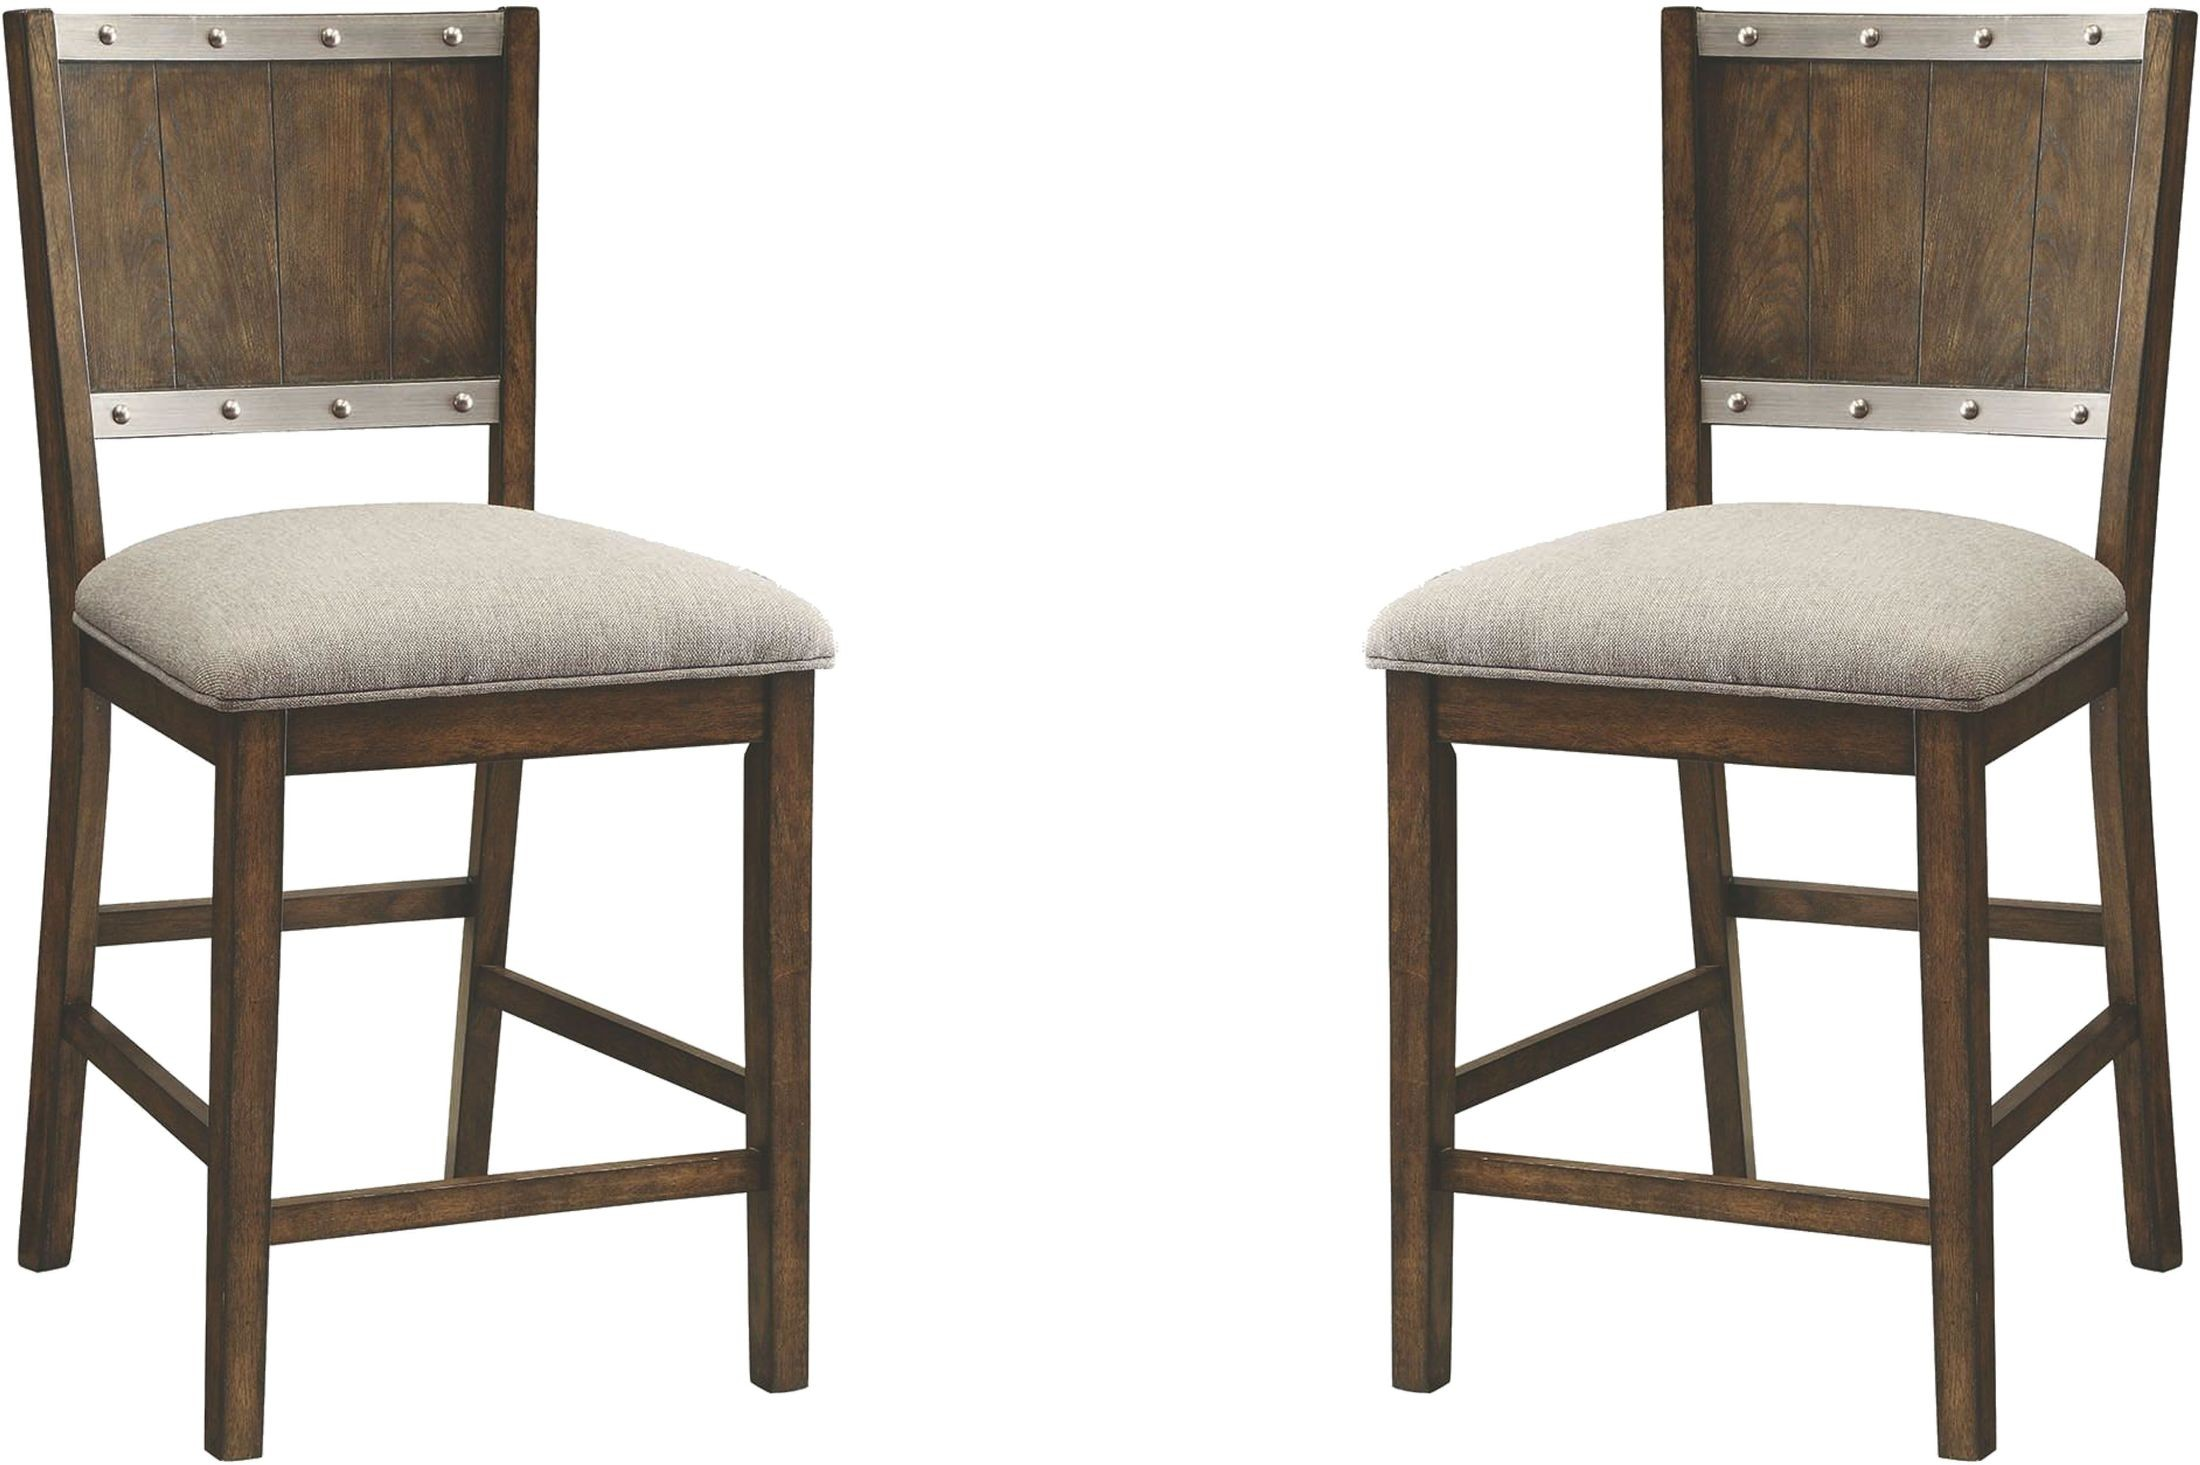 upholstered counter height chair white spandex covers canada beckett dark oak stool set of 2